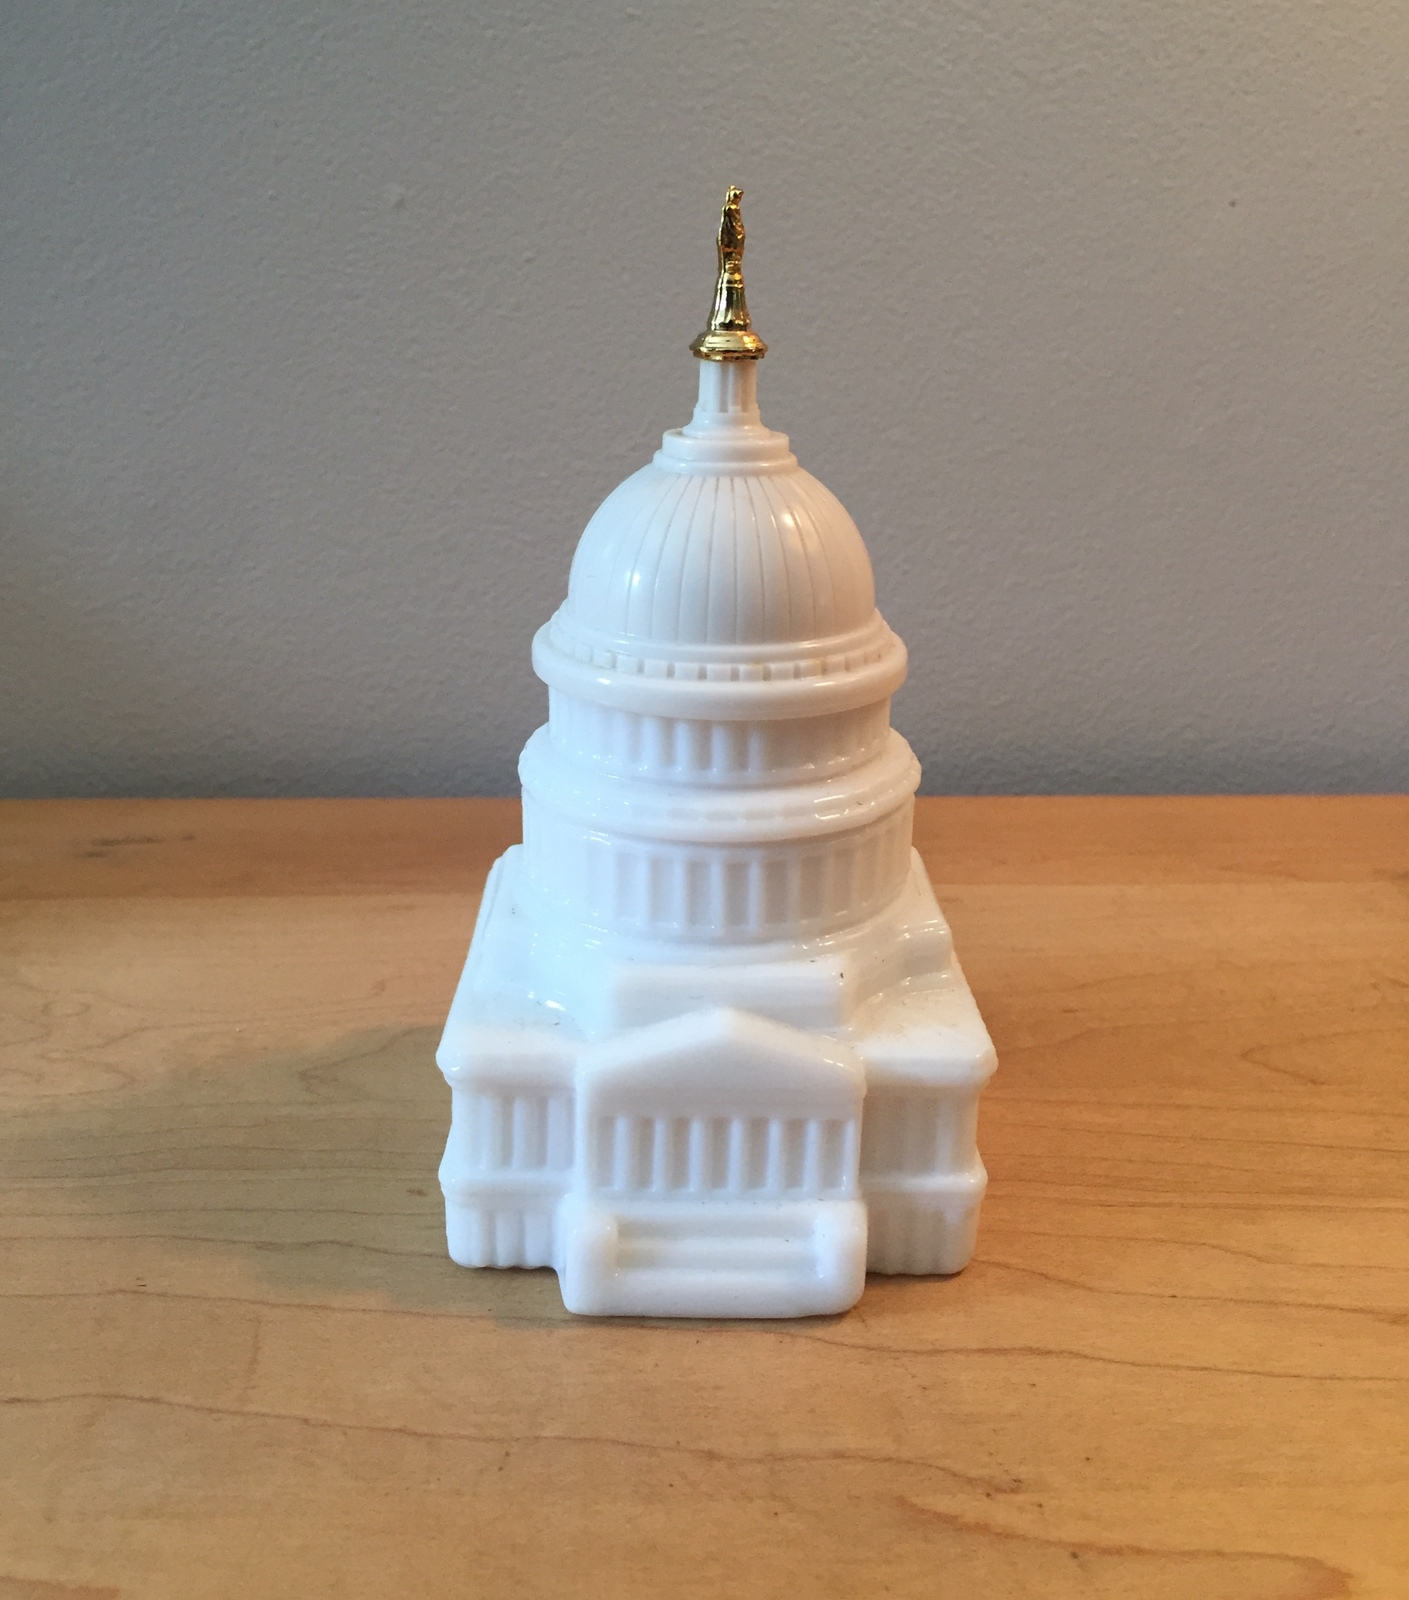 70s Avon US Capitol Building after shave bottle with gold top (Wild Country)